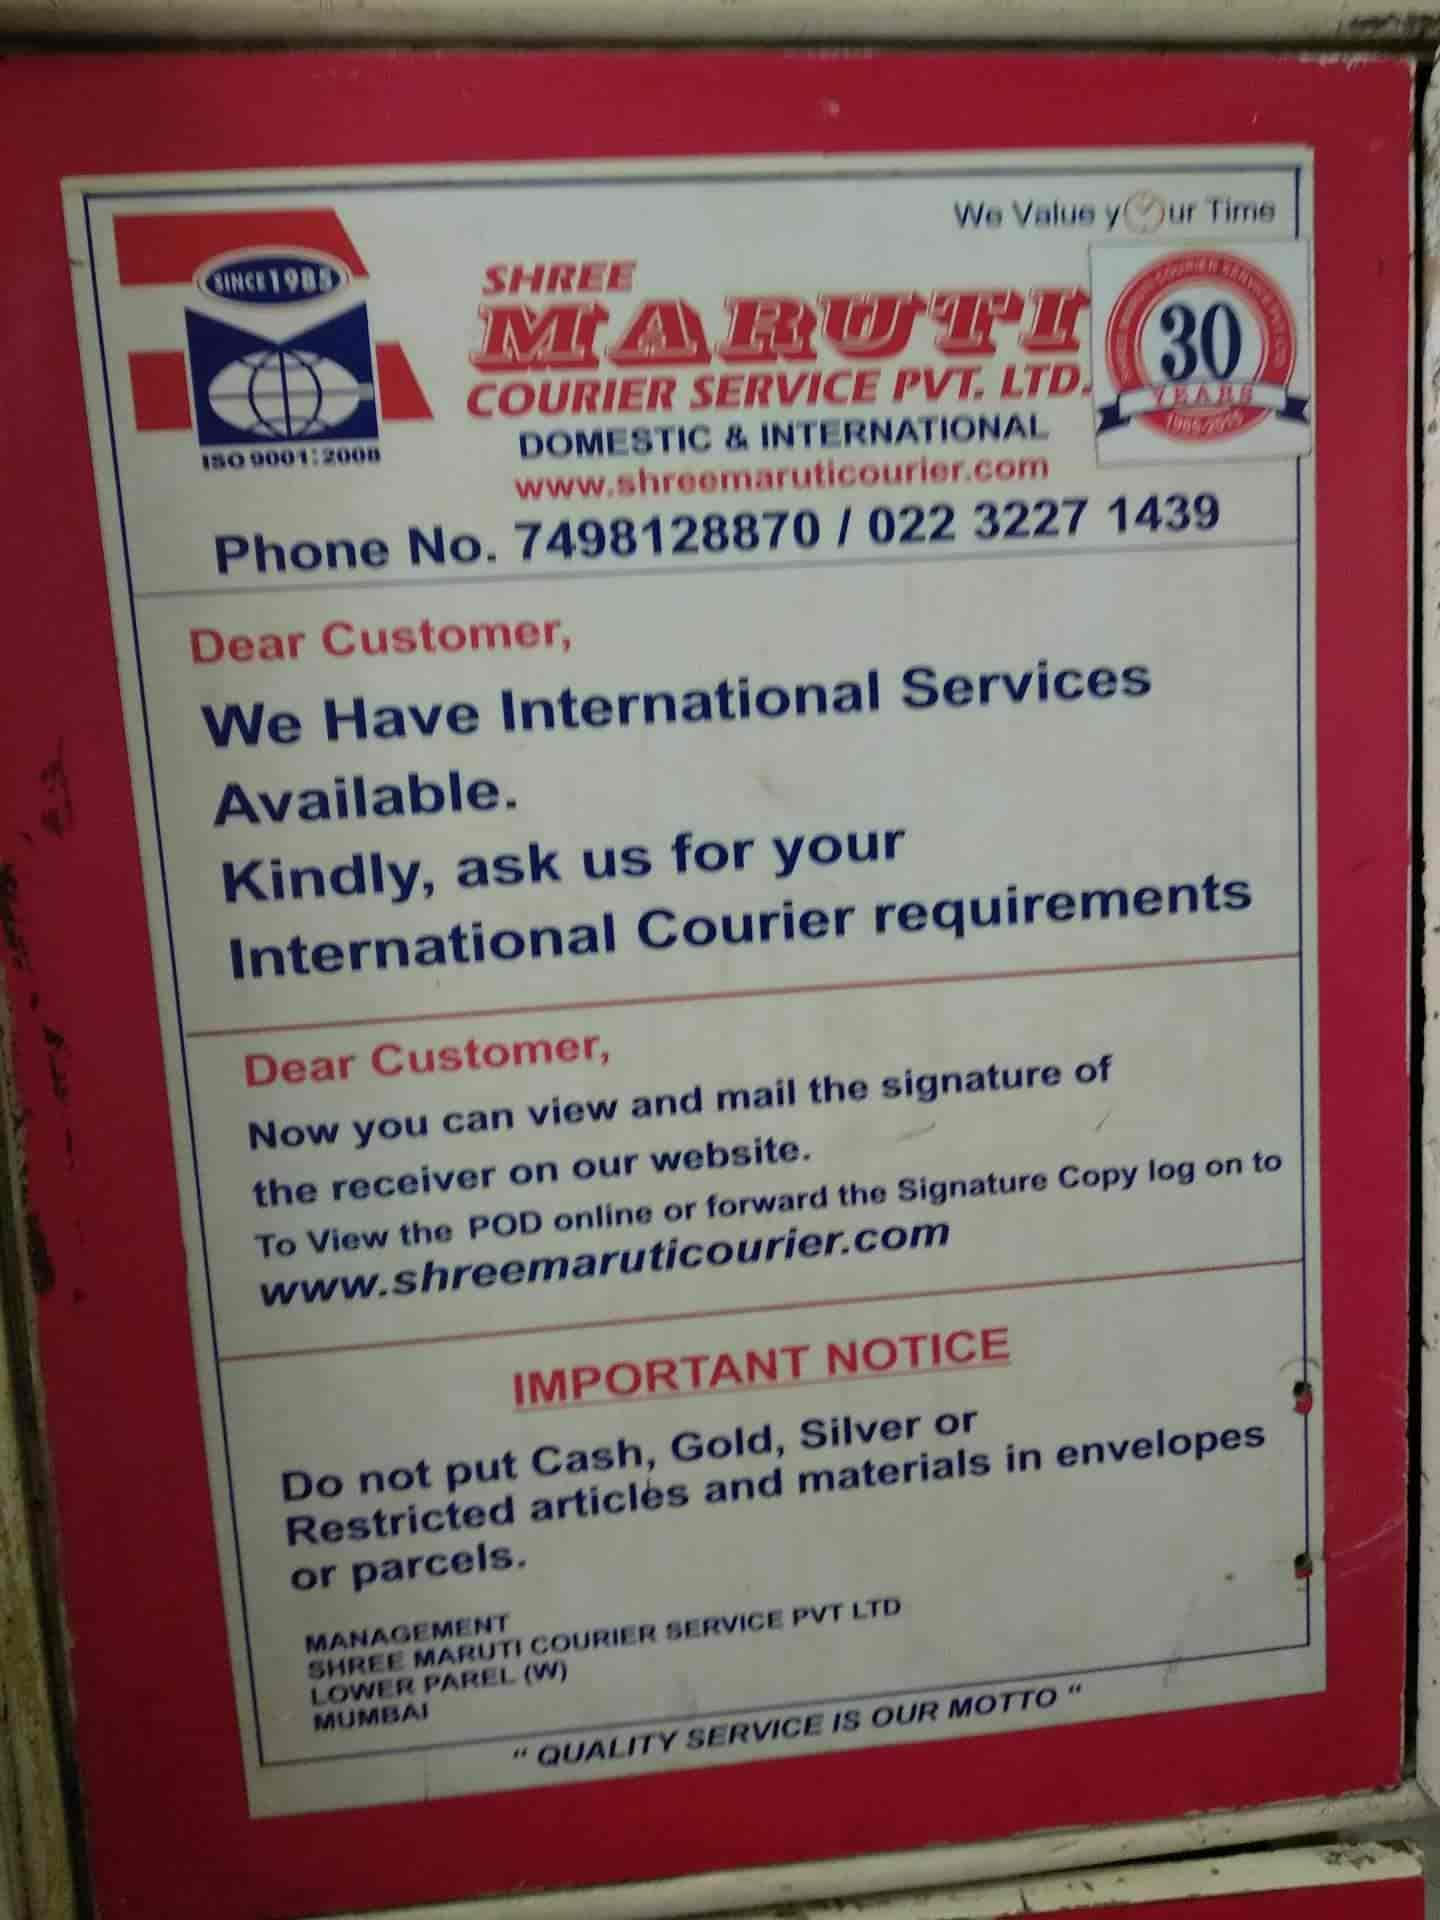 Shree Maruti Courier Services Pvt Ltd, Lower Parel - Courier